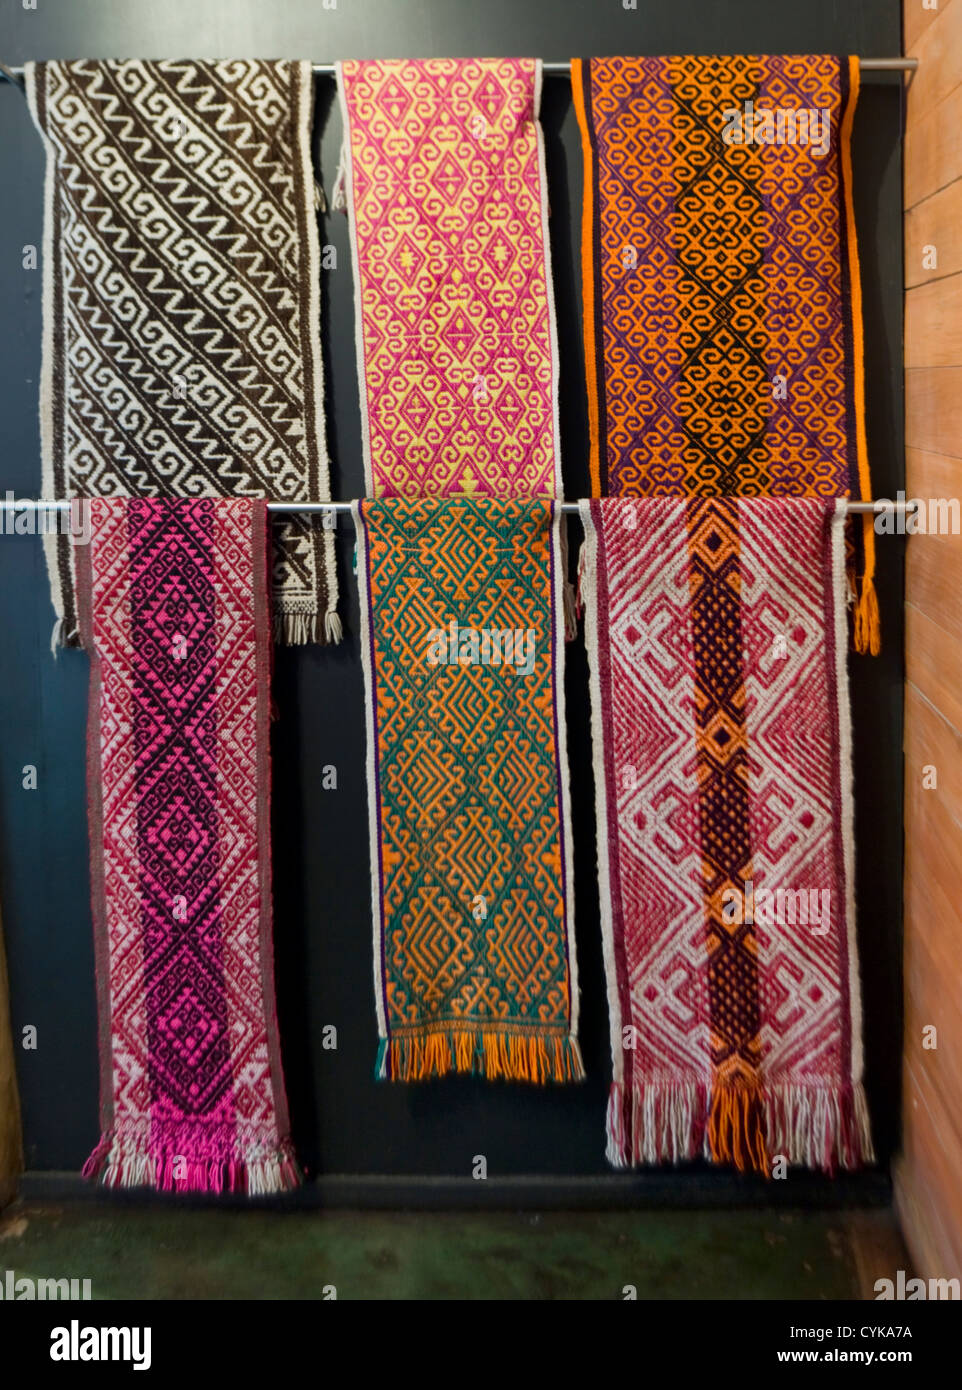 Chile. South America. Mapuche Museum and Cultural Center in Curarrehue. Mapuche weaving display. Araucania Region. - Stock Image